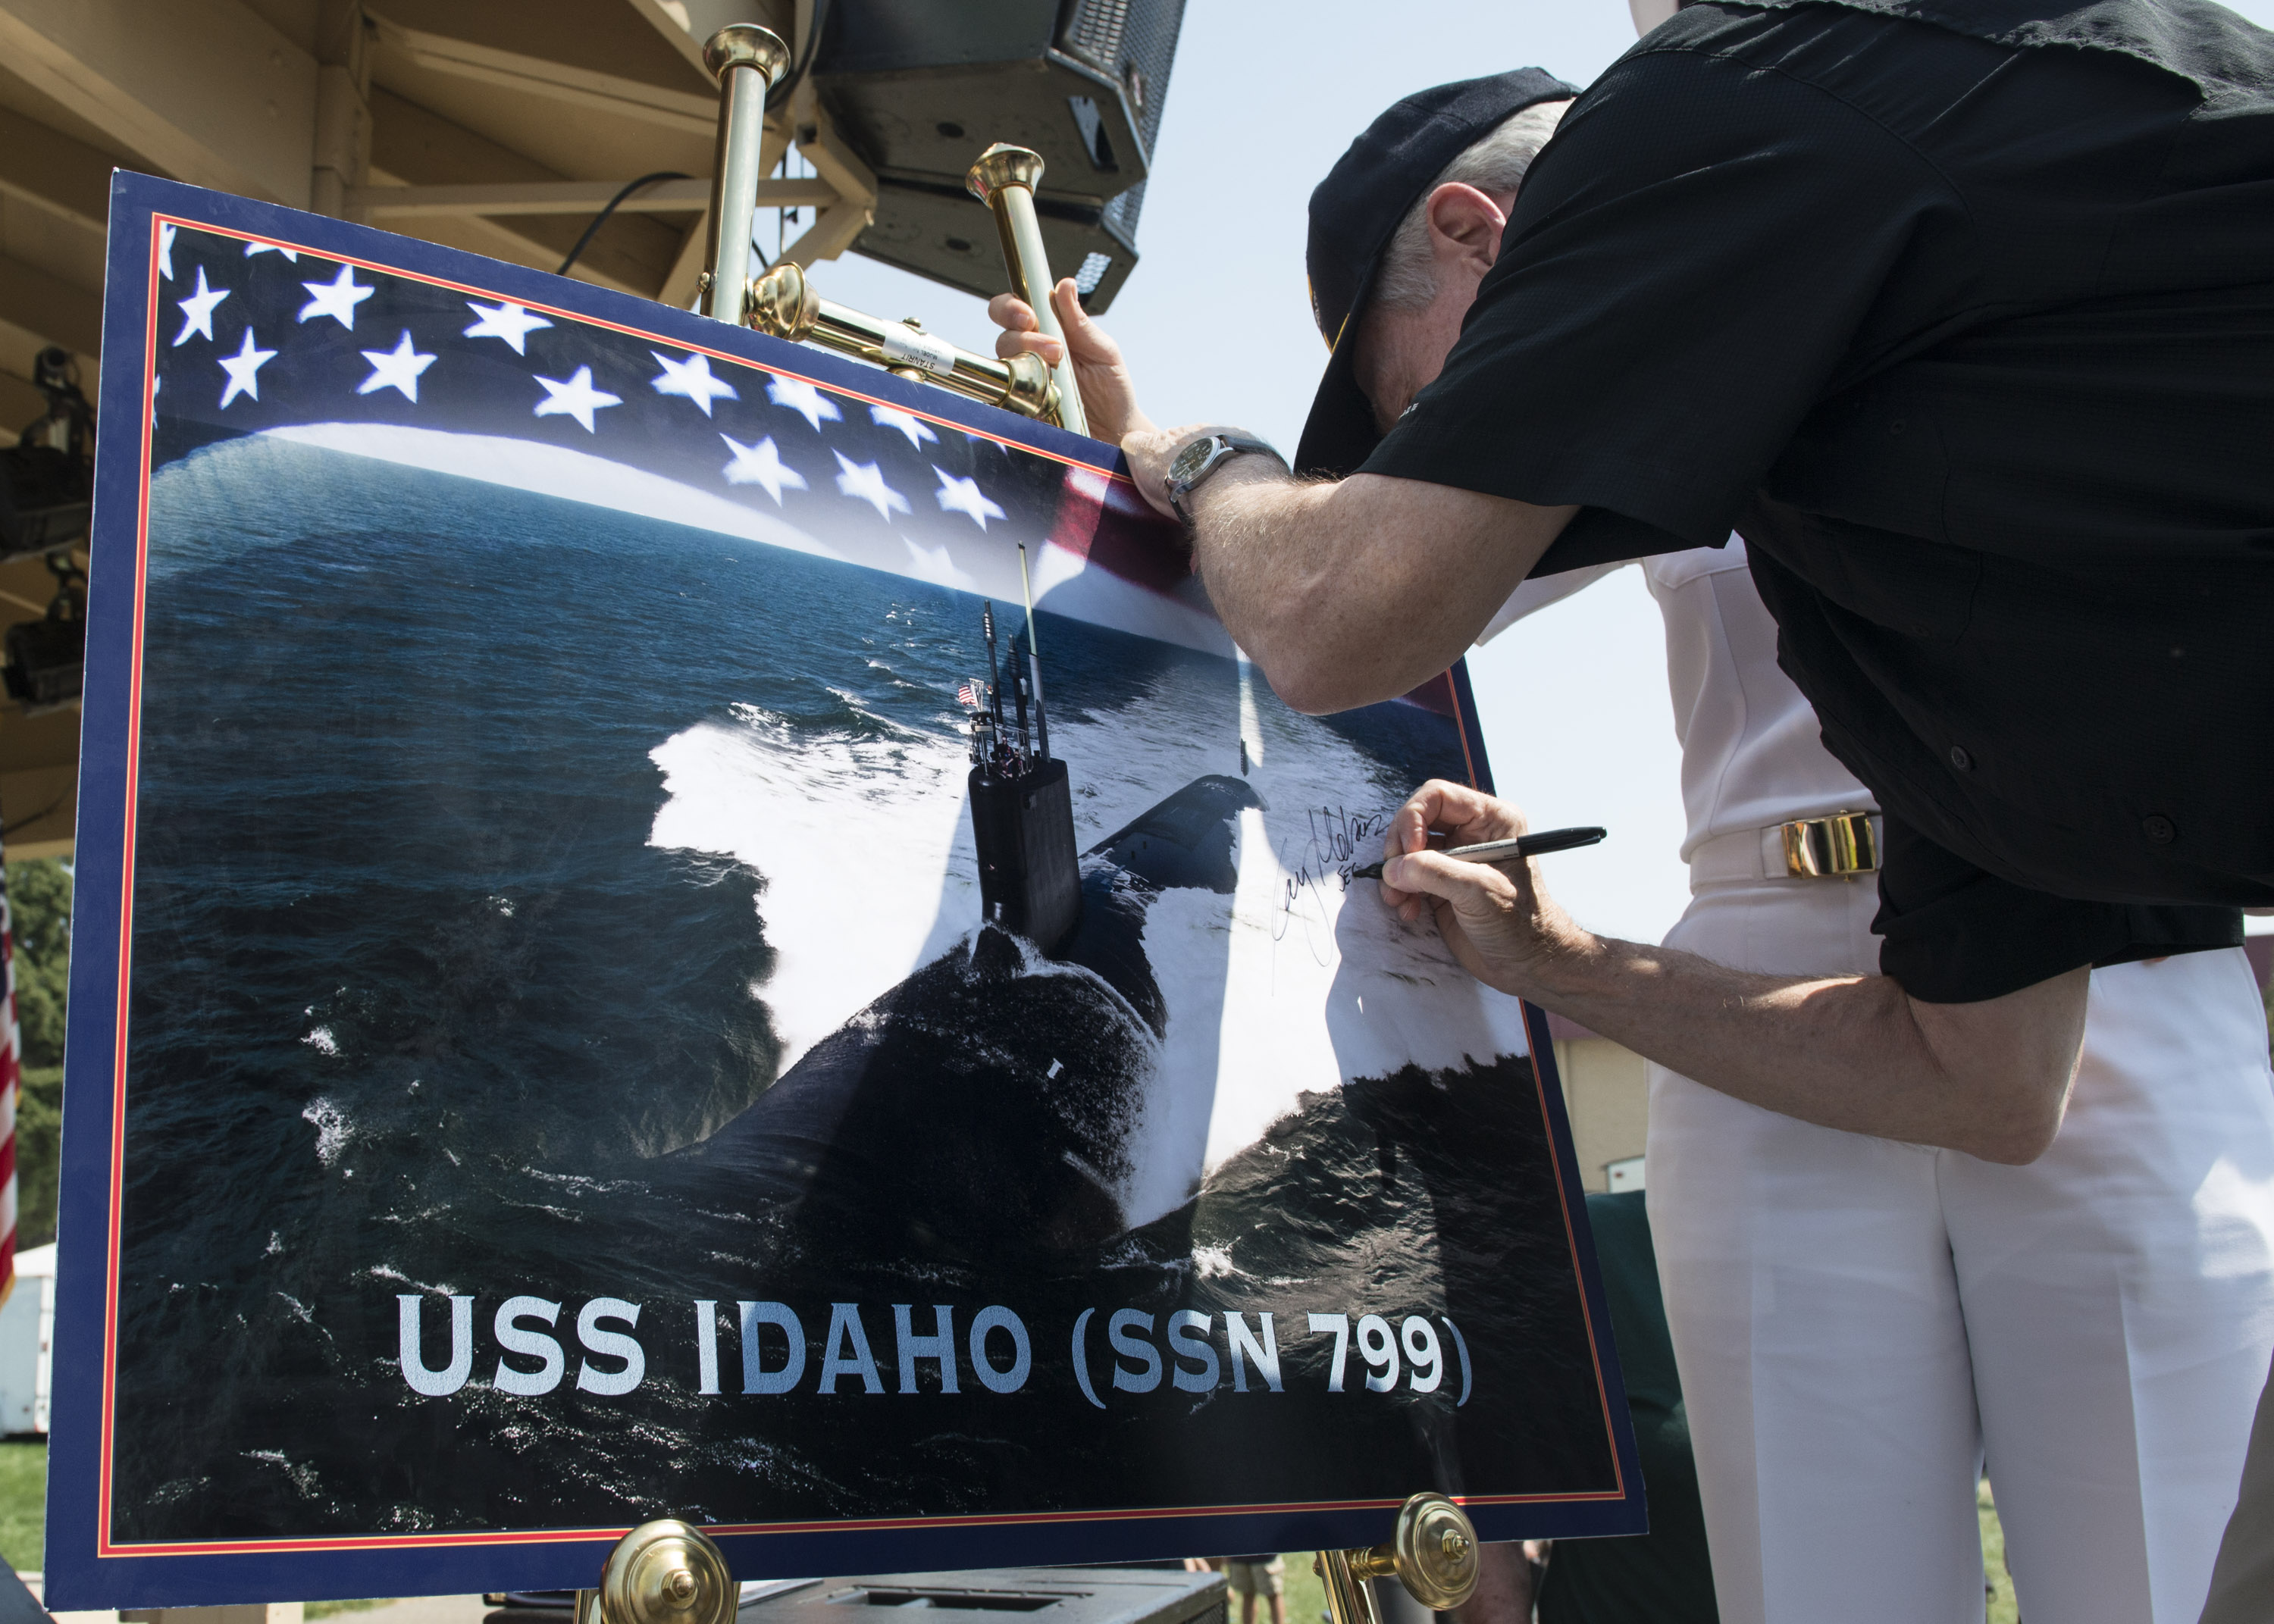 USS IDAHO SSN-799 Naming Bild: U.S. Navy